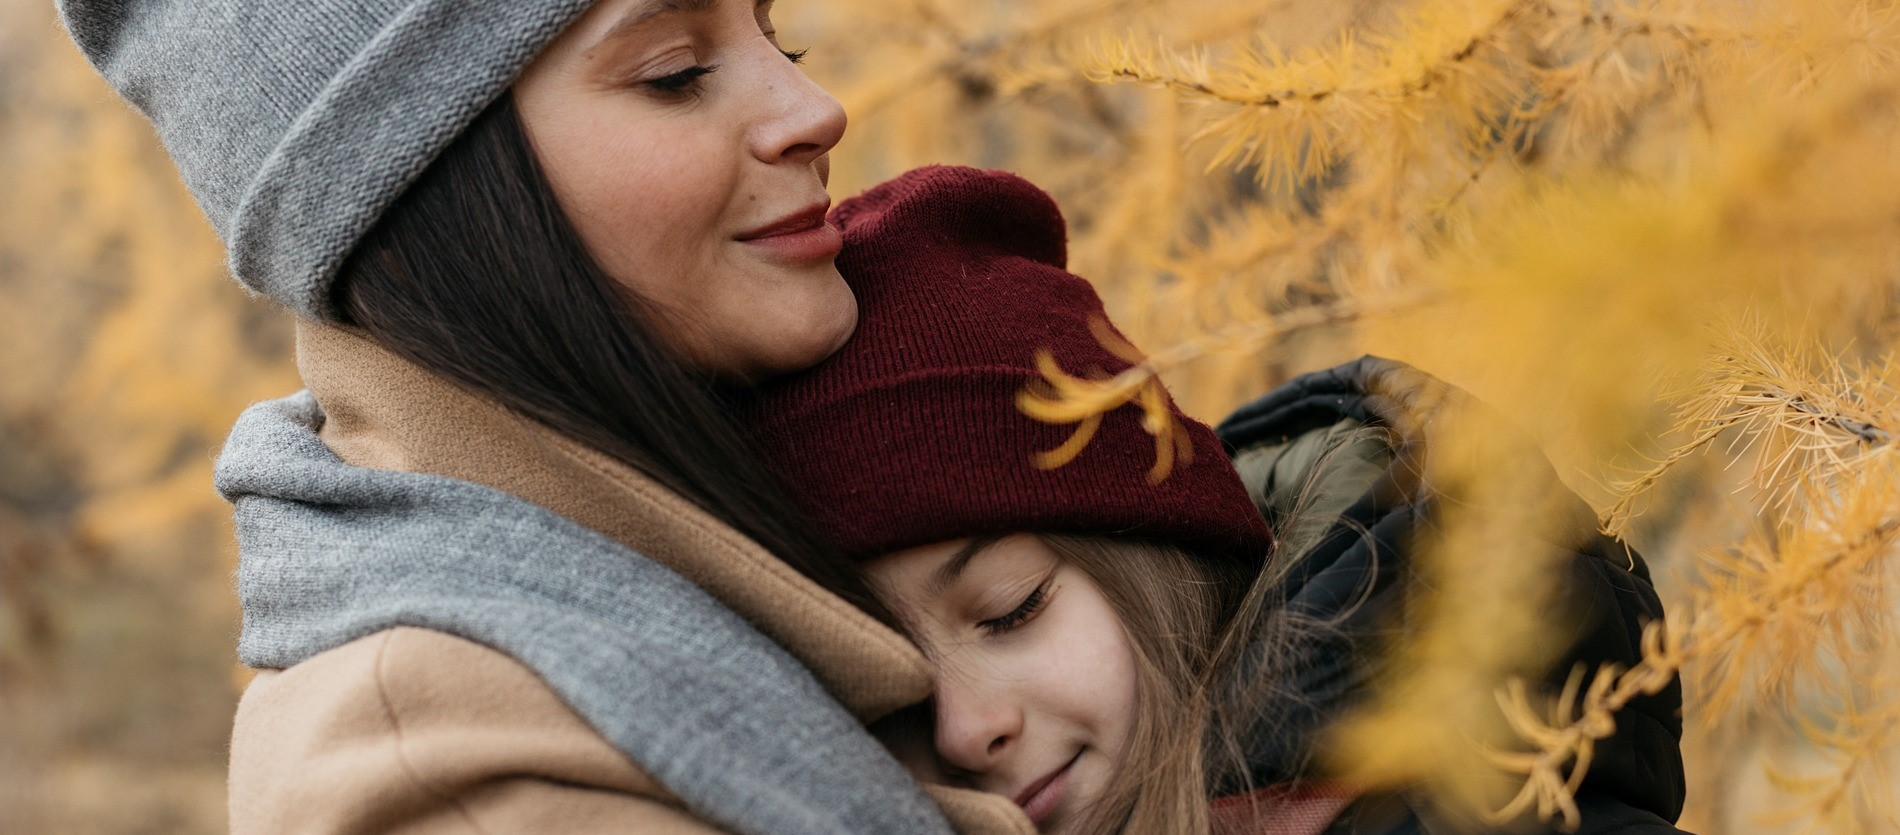 Mother And Daughter in Autumn | Breast Cancer Car Donations